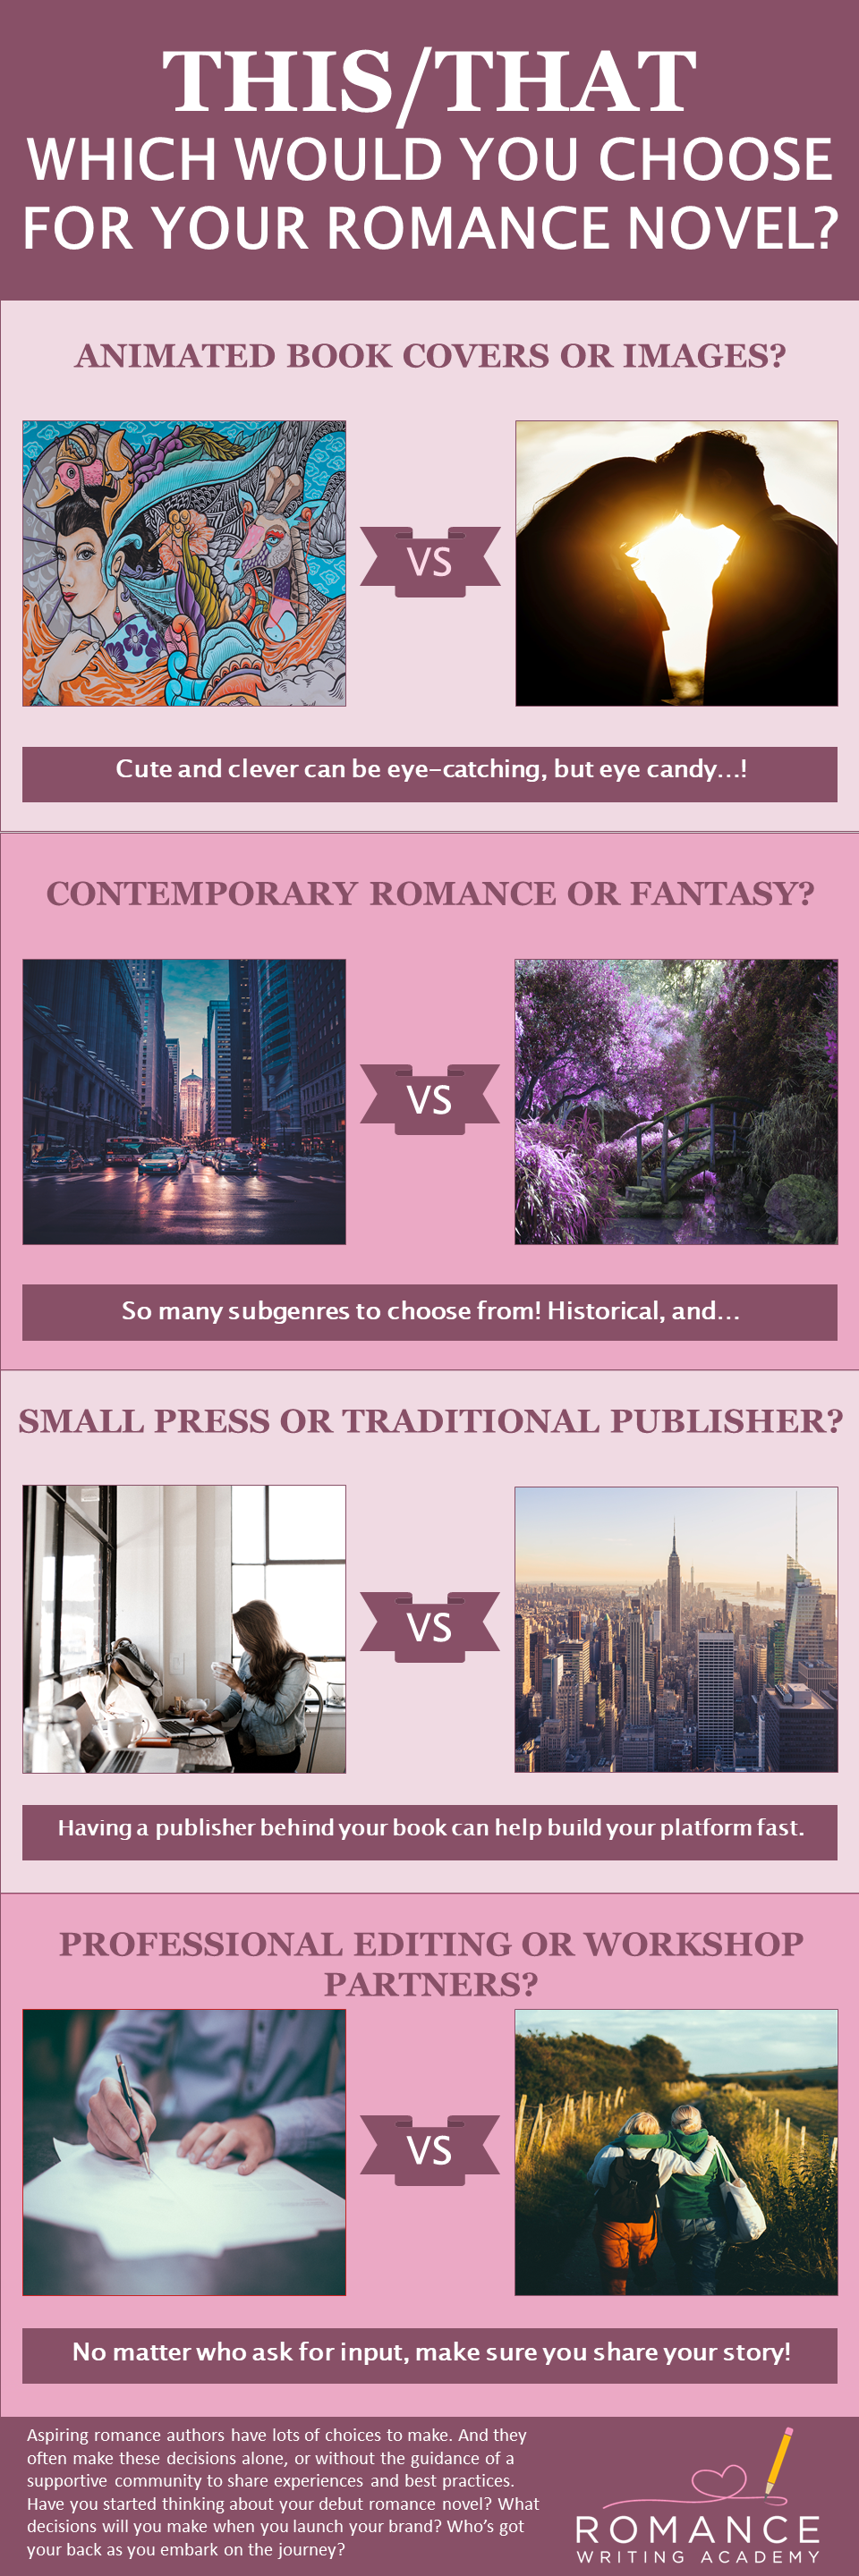 This or That? Which Would You Choose For Your Romance Novel [Infographic]